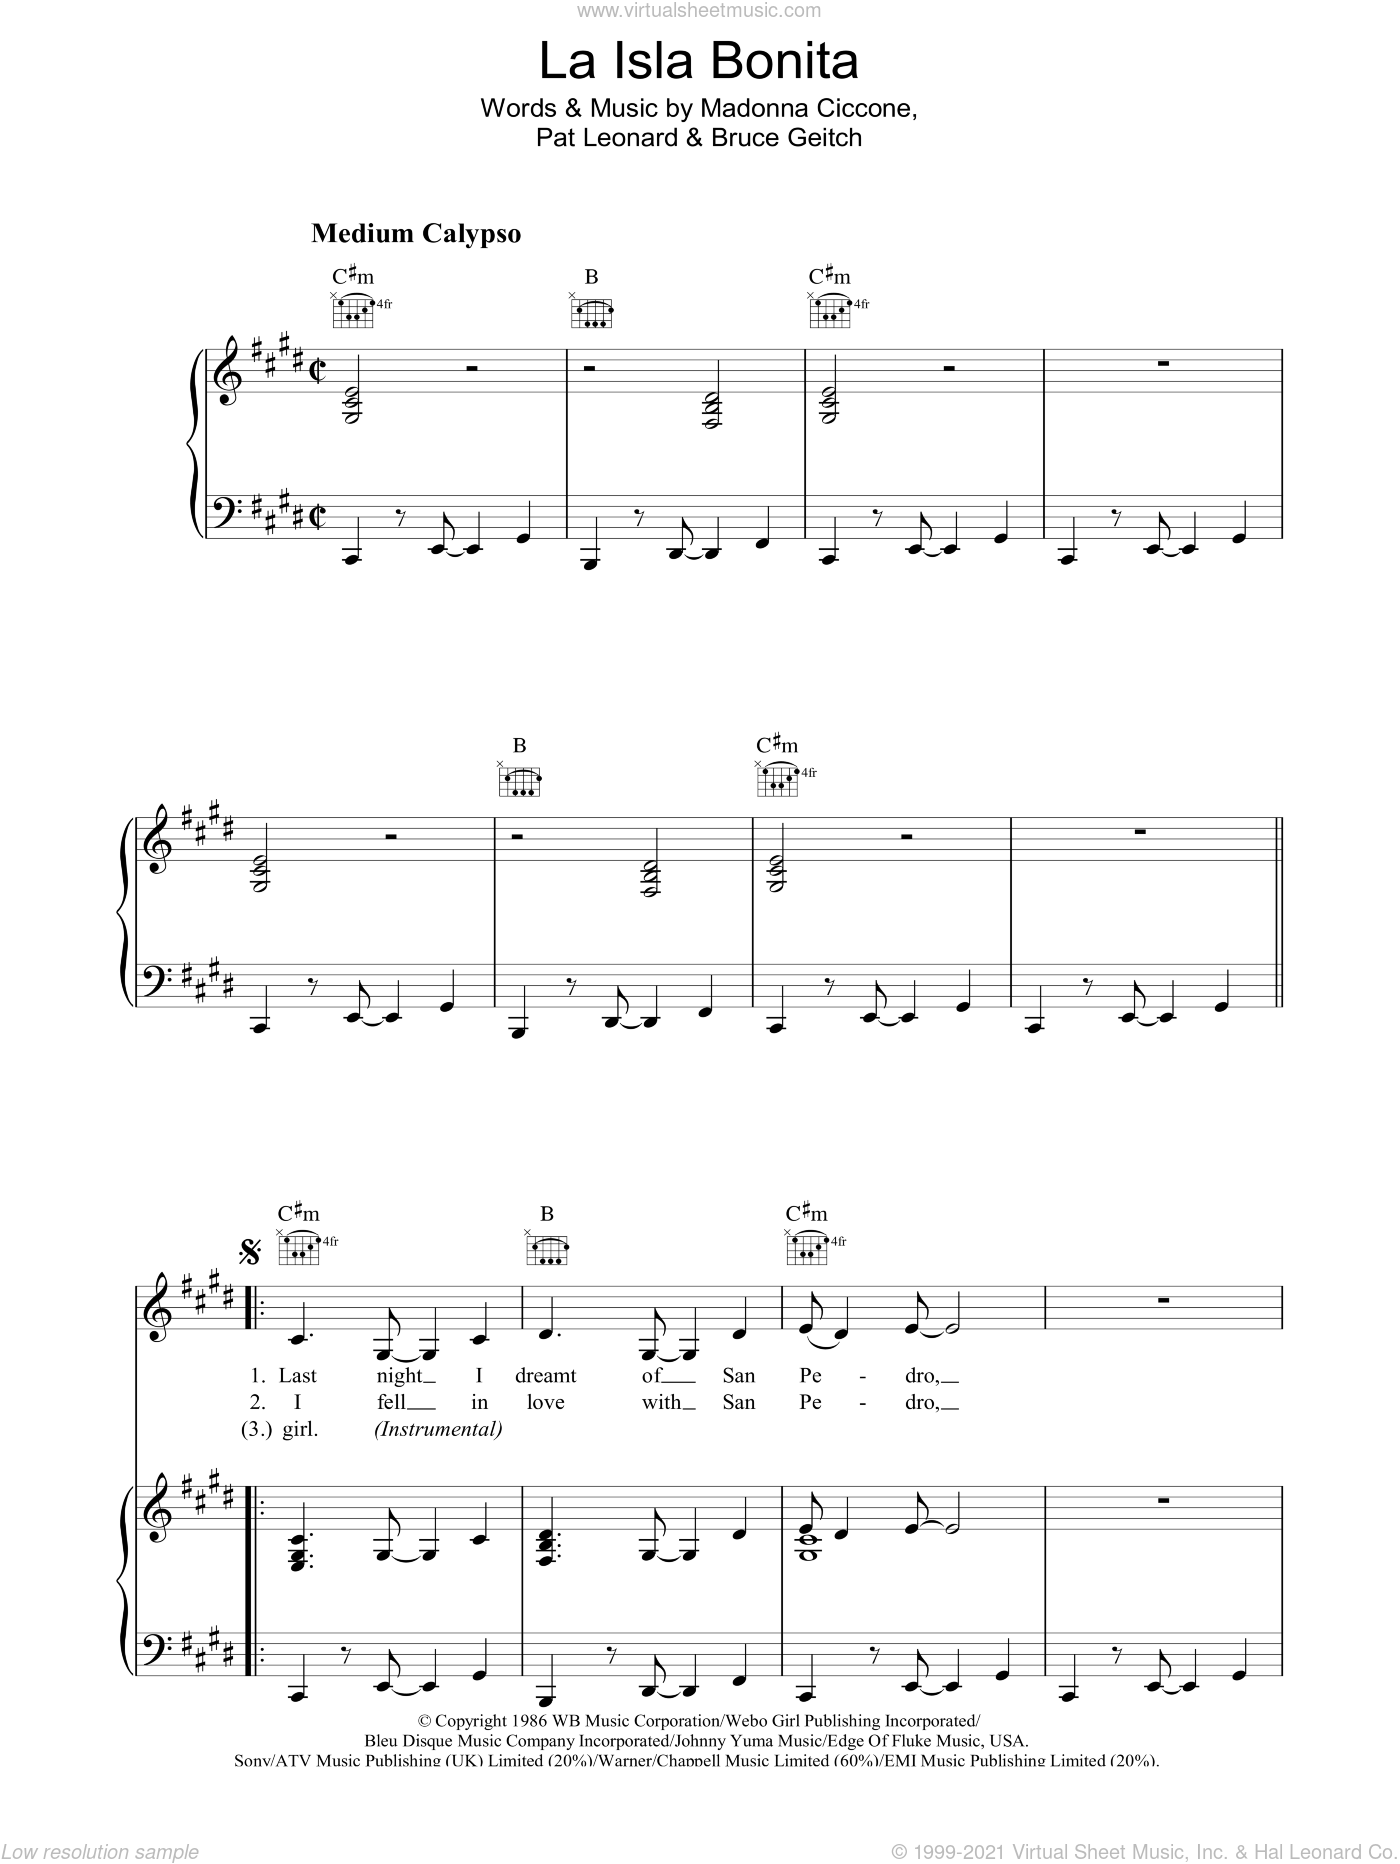 La Isla Bonita sheet music for voice, piano or guitar by Madonna, Bruce Gaitsch and Patrick Leonard, intermediate skill level